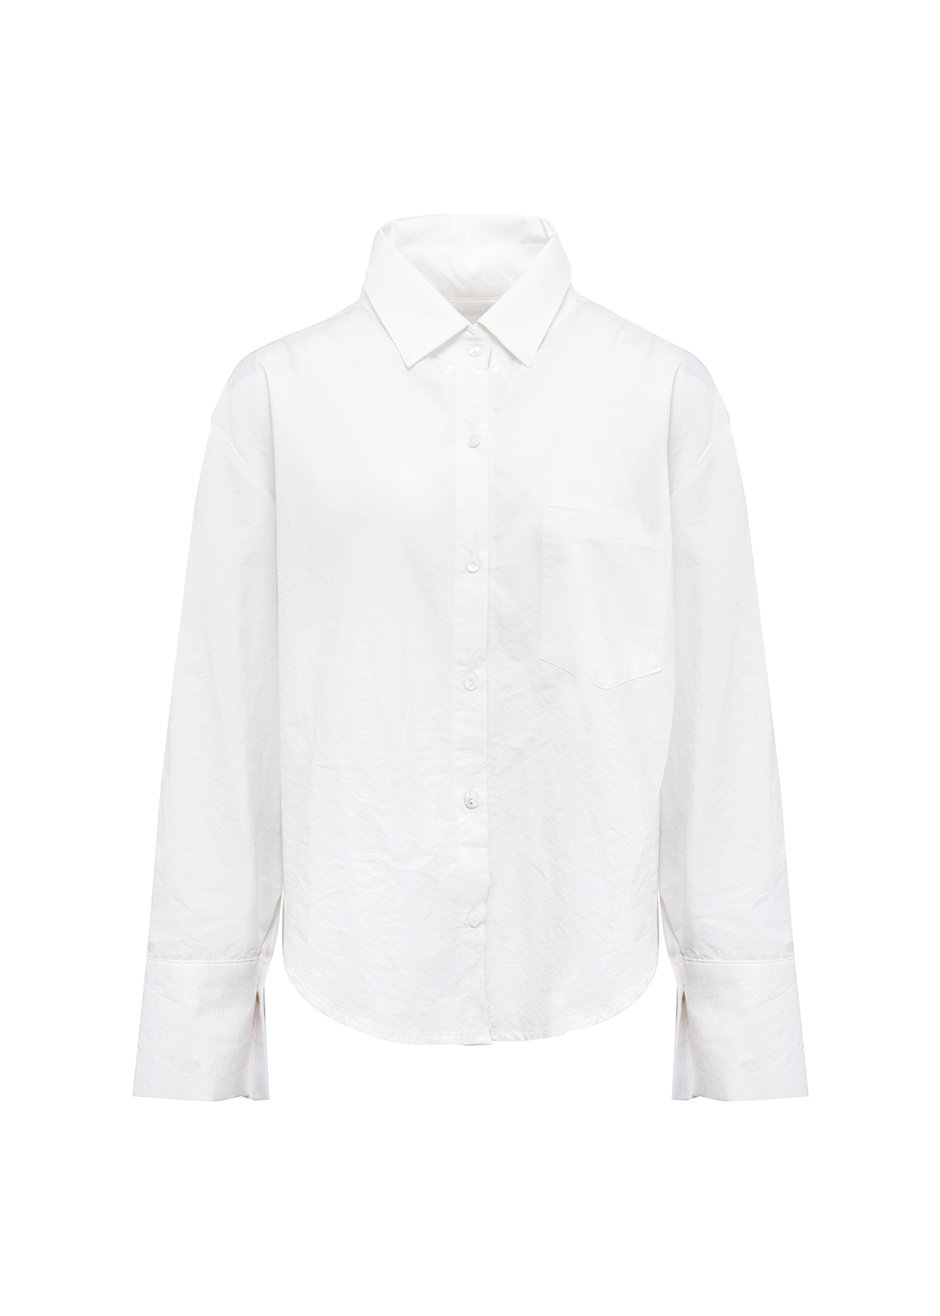 https://thefrankieshop.com/collections/new-arrivals/products/patch-pocket-white-cotton-shirt